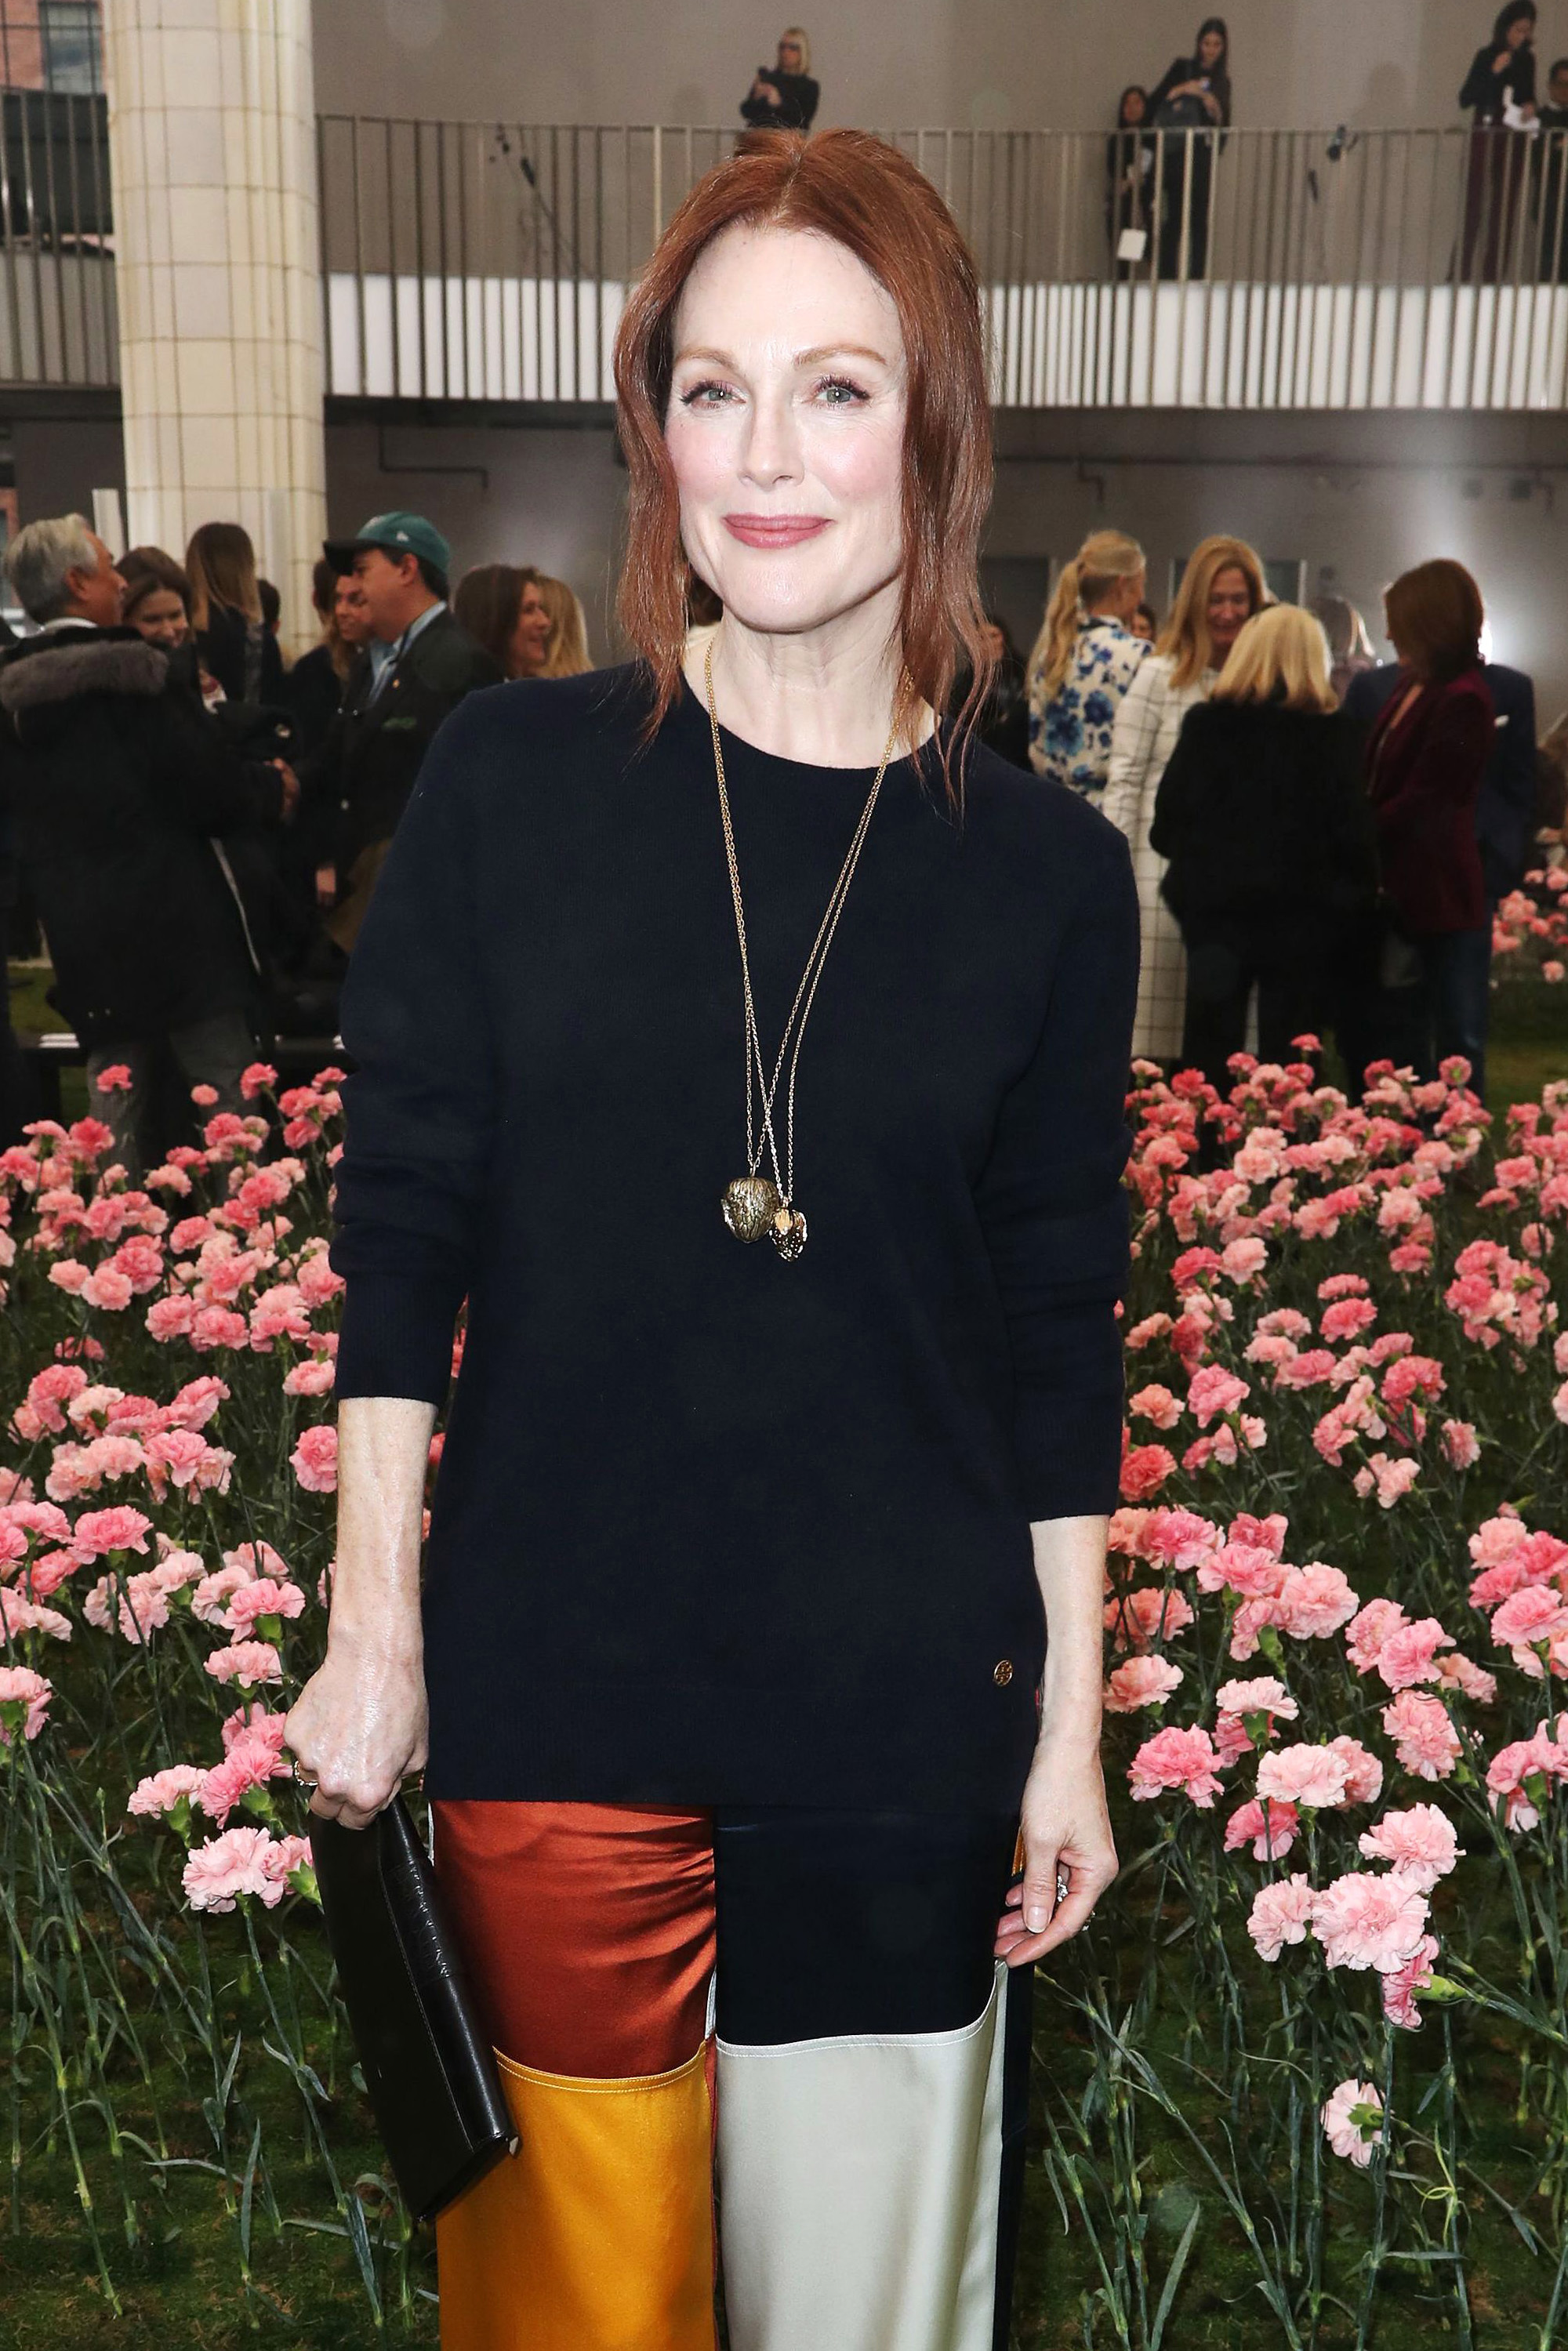 Julianne Moore appears at the Tory Burch show for Fall/Winter 2018 at New York Fashion Week on Feb. 9, 2018.